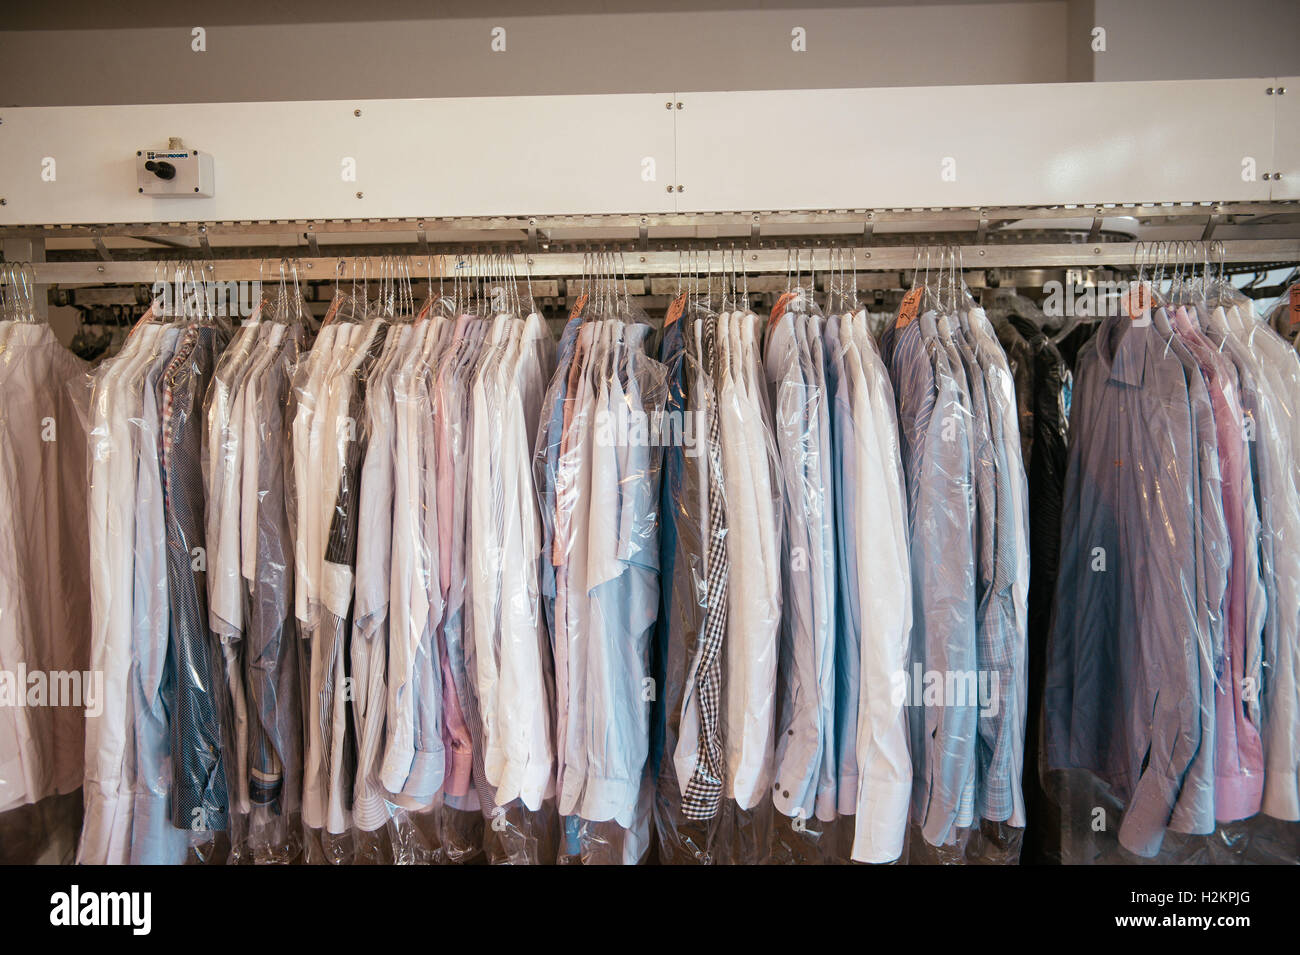 Oberursel, Germany. 03rd Sep, 2016. Picture of cleaned clothes in a laundry, taken on 03/09/16 in Oberursel   usage - Stock Image